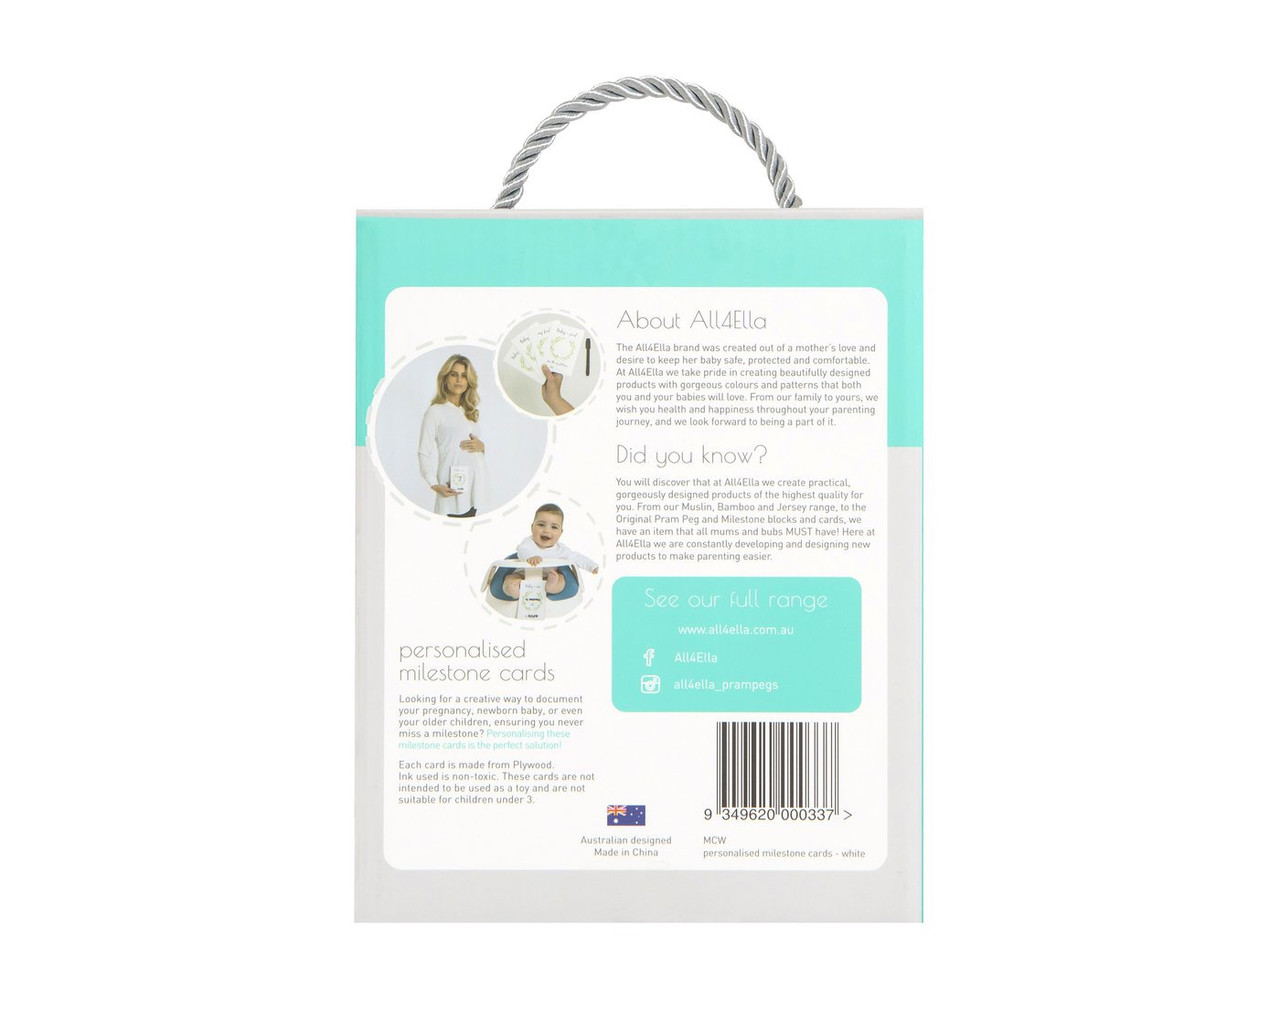 All4Ella Personalised Milestone Cards White with Erasable Marker at Baby Barn Discounts Milestone cards are a creative way to document pregnancy and a newborn baby ensuring a milestone is never missed